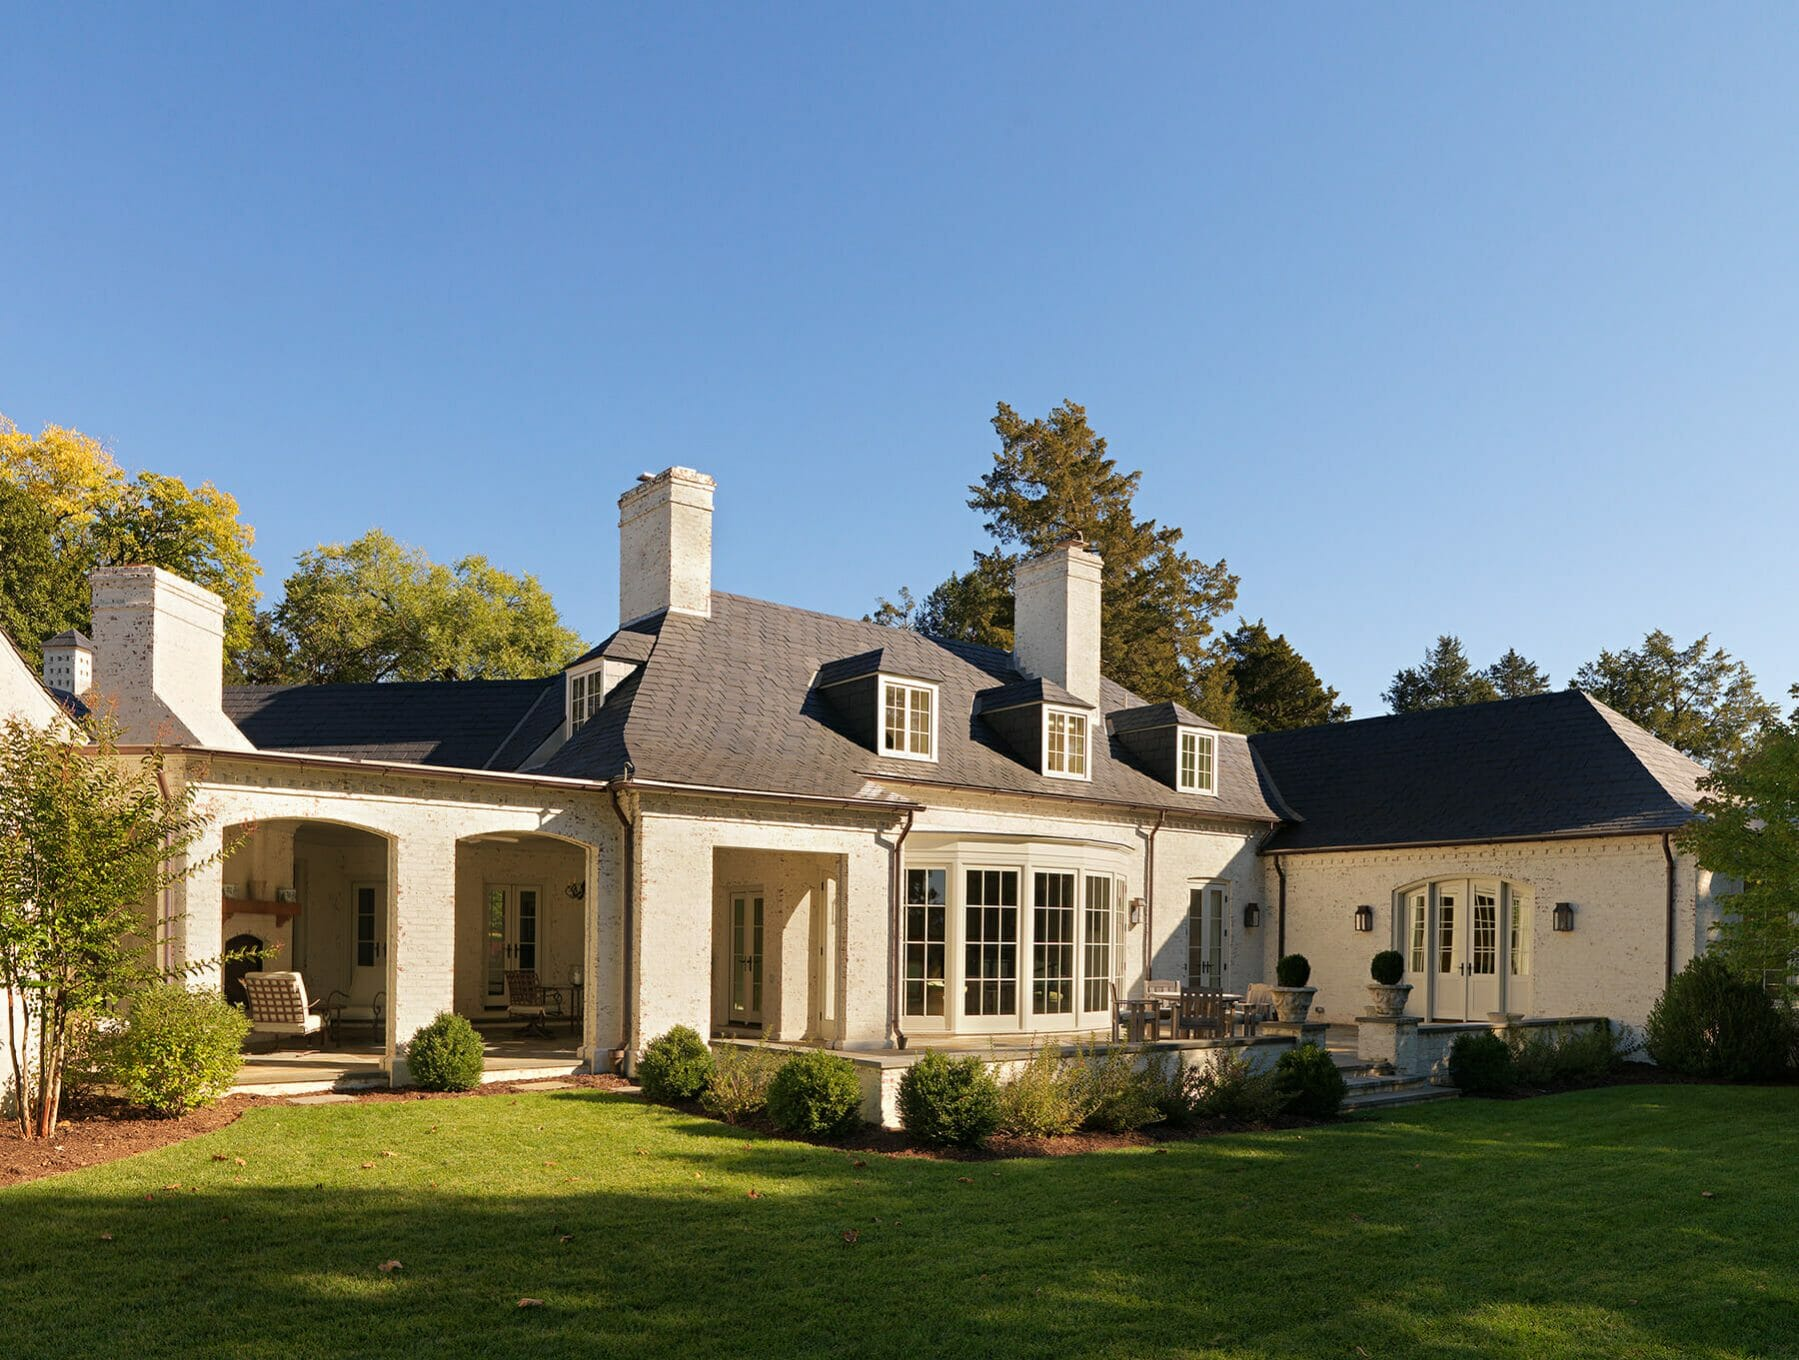 GME builders specializes in preserving and reconstructing Virginia's historic architecture and estates.